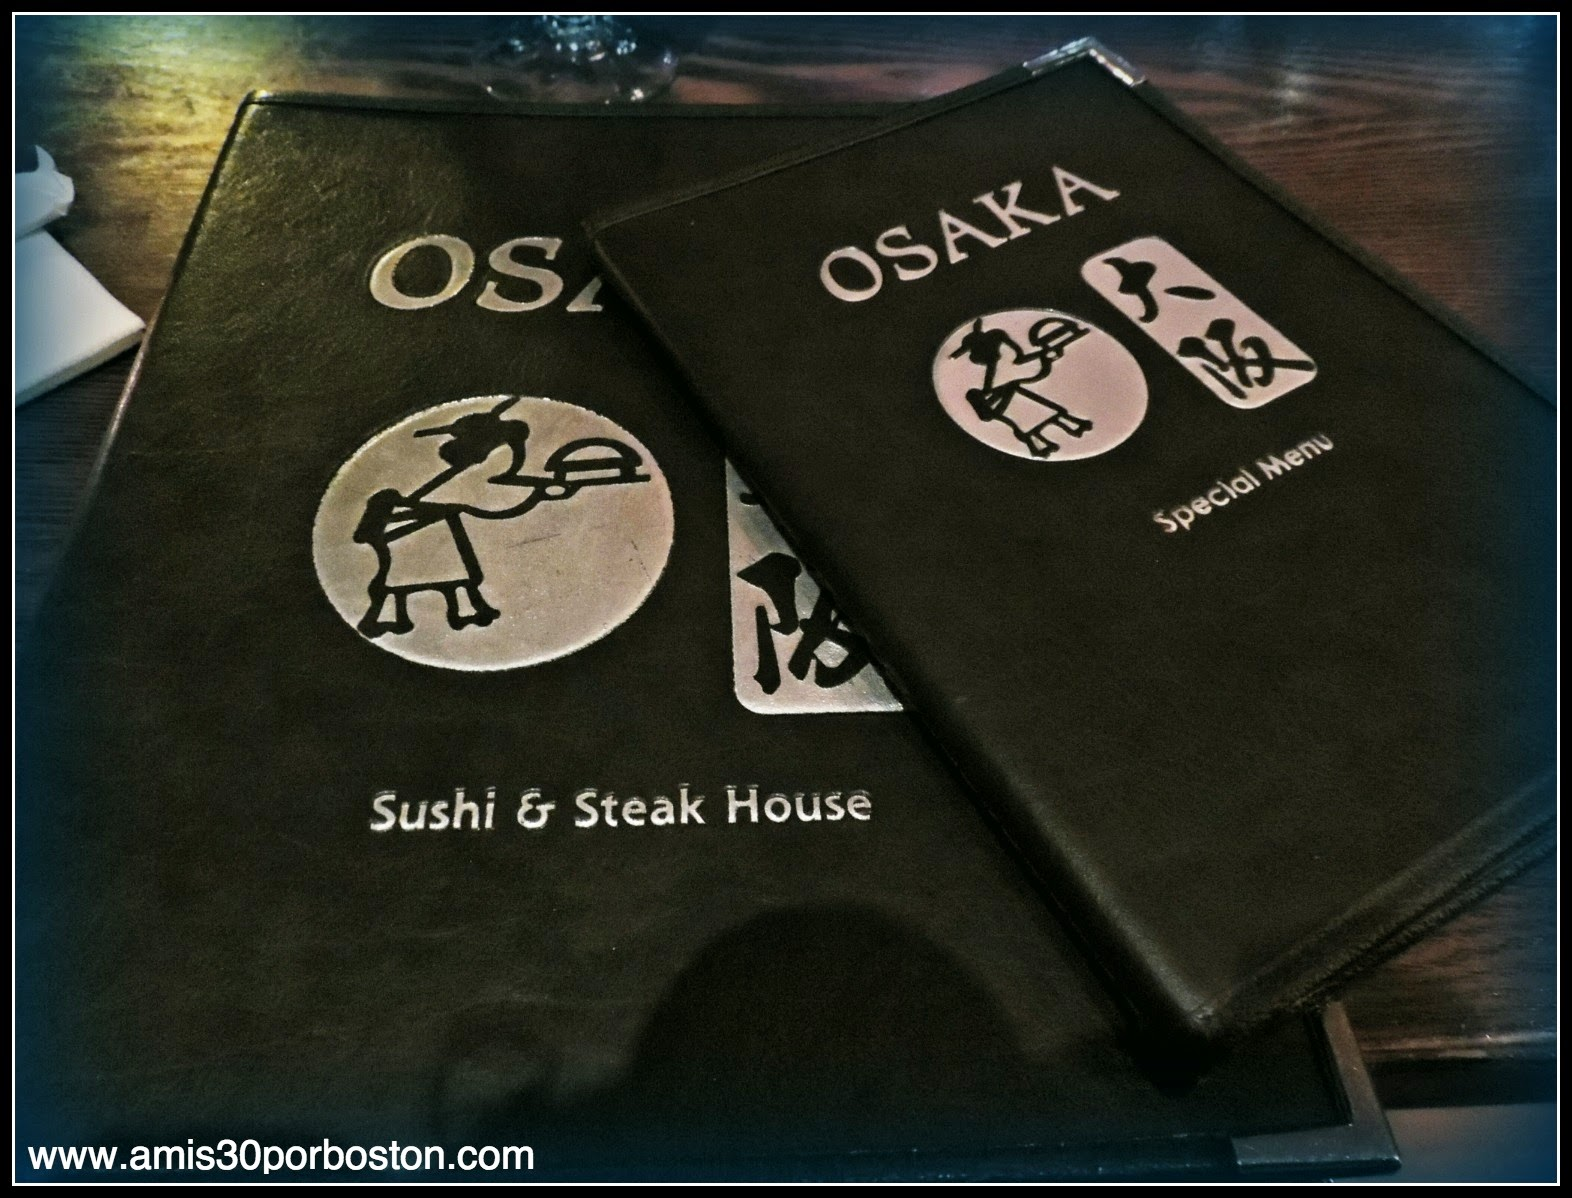 Dine Out Boston Marzo 2014: Osaka